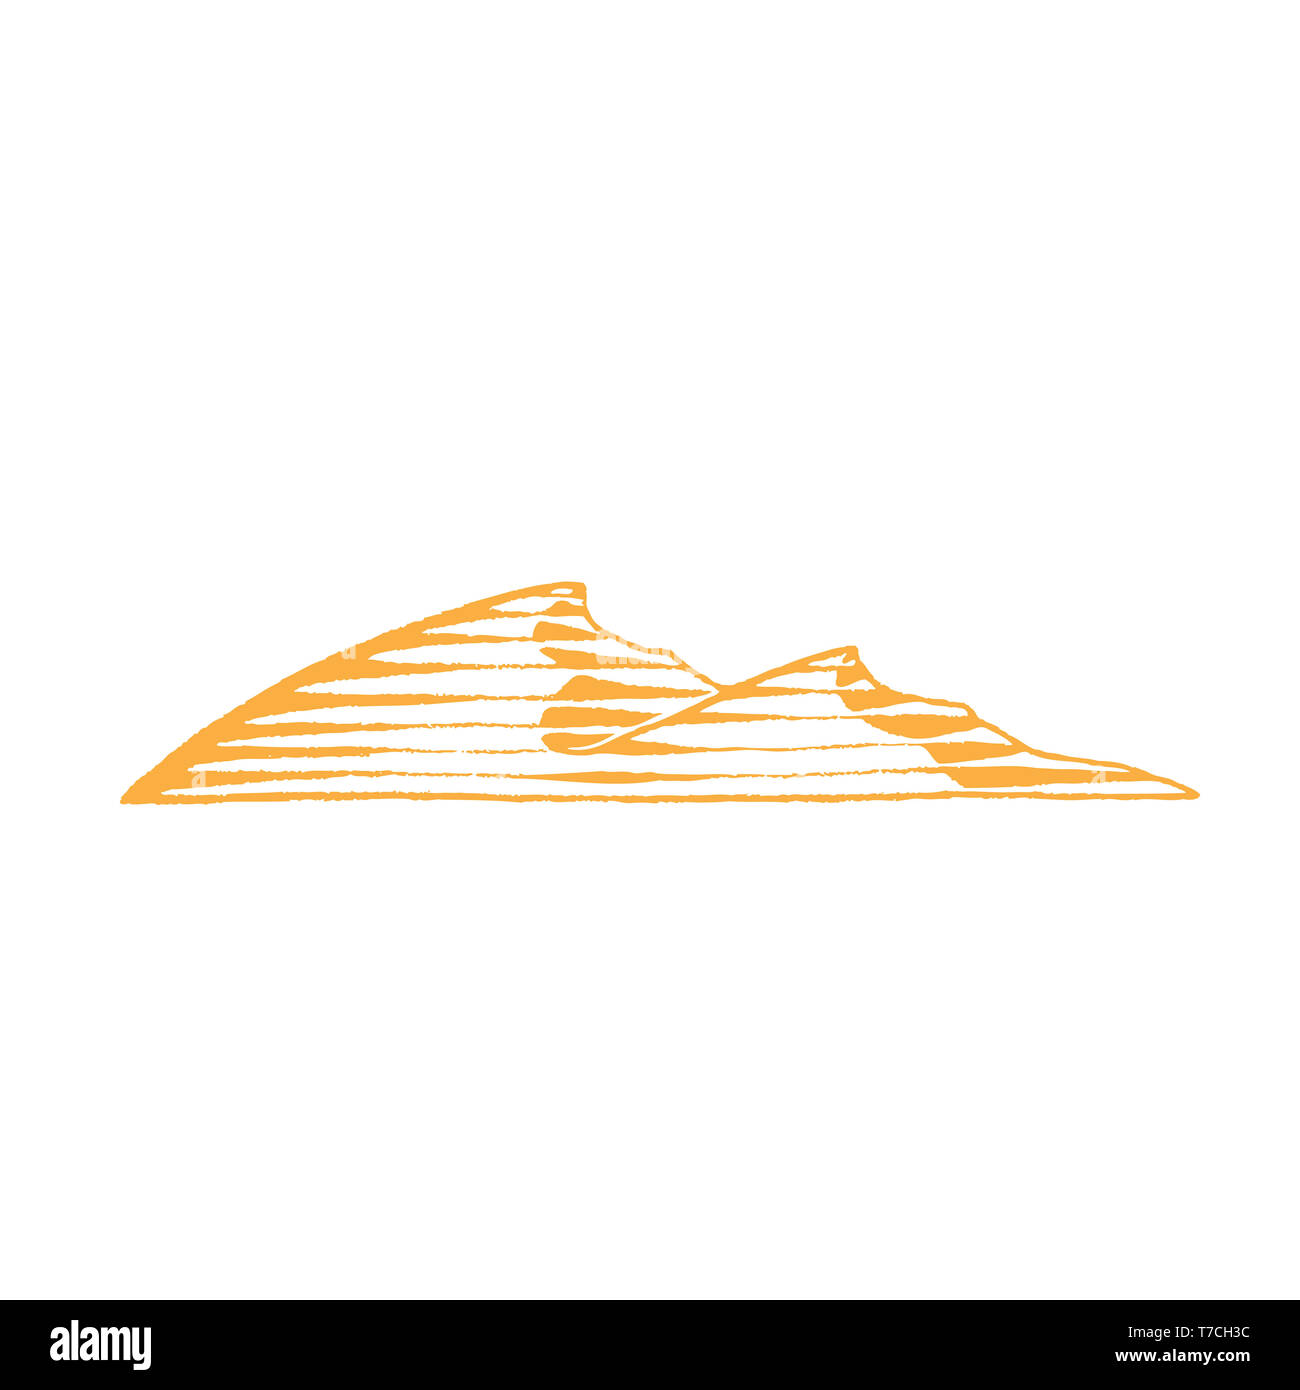 Illustration of Yellow Vectorized Ink Sketch of Sand Dunes isolated on a White Background - Stock Image